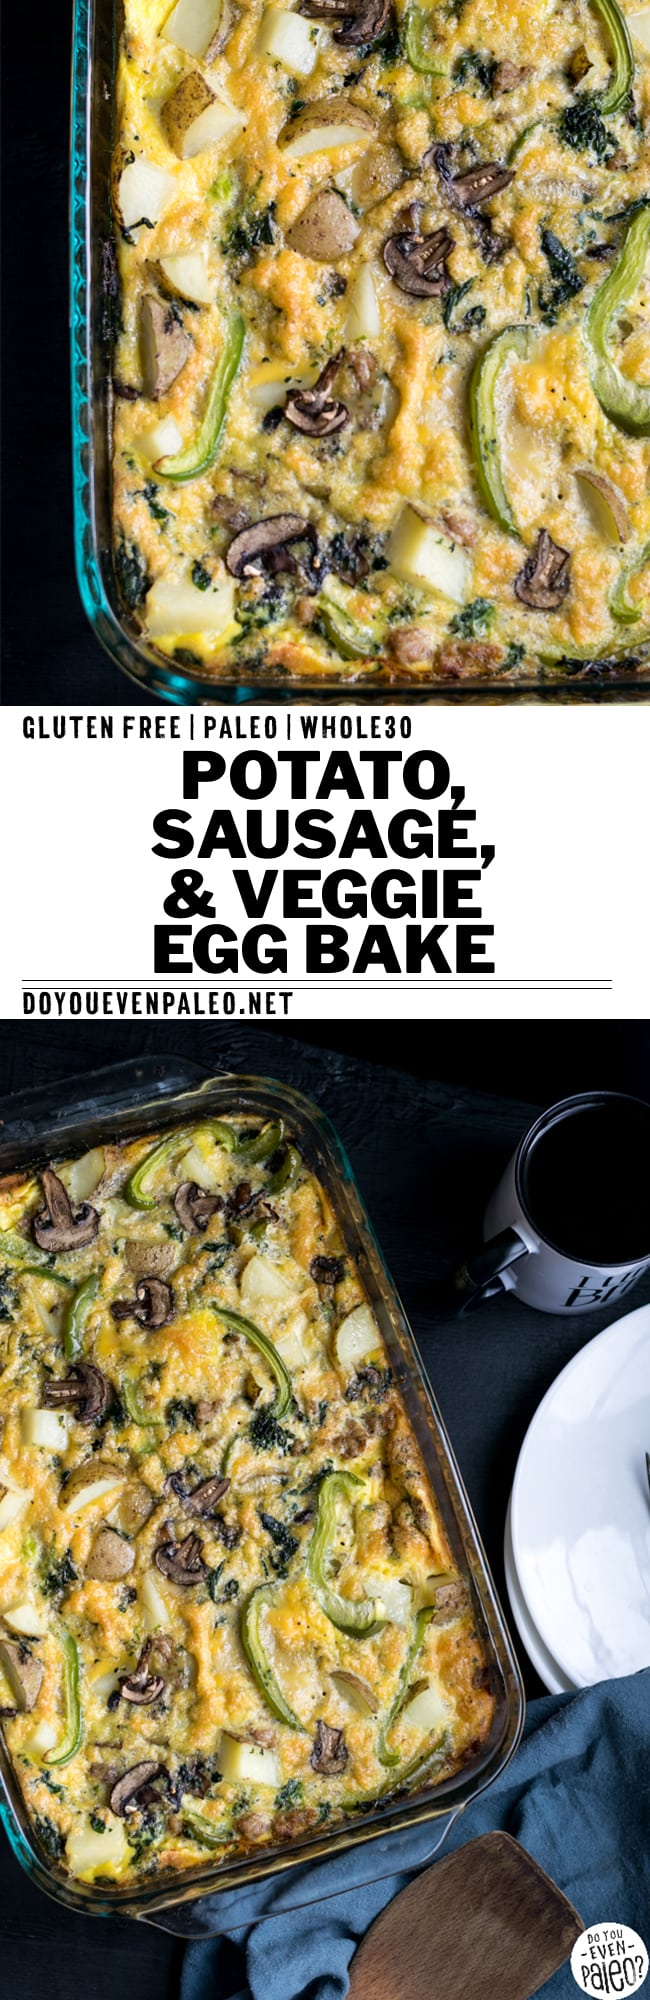 Prep breakfast for the week with this easy Potato, Sausage, and Veggie Egg Bake! This healthy recipe uses peppers, mushrooms, spinach, peppers and sausage to bulk up eggs and make a well-rounded breakfast. Paleo, gluten free, Whole30 and clean eating. | DoYouEvenPaleo.net #paleo #whole30 #glutenfree